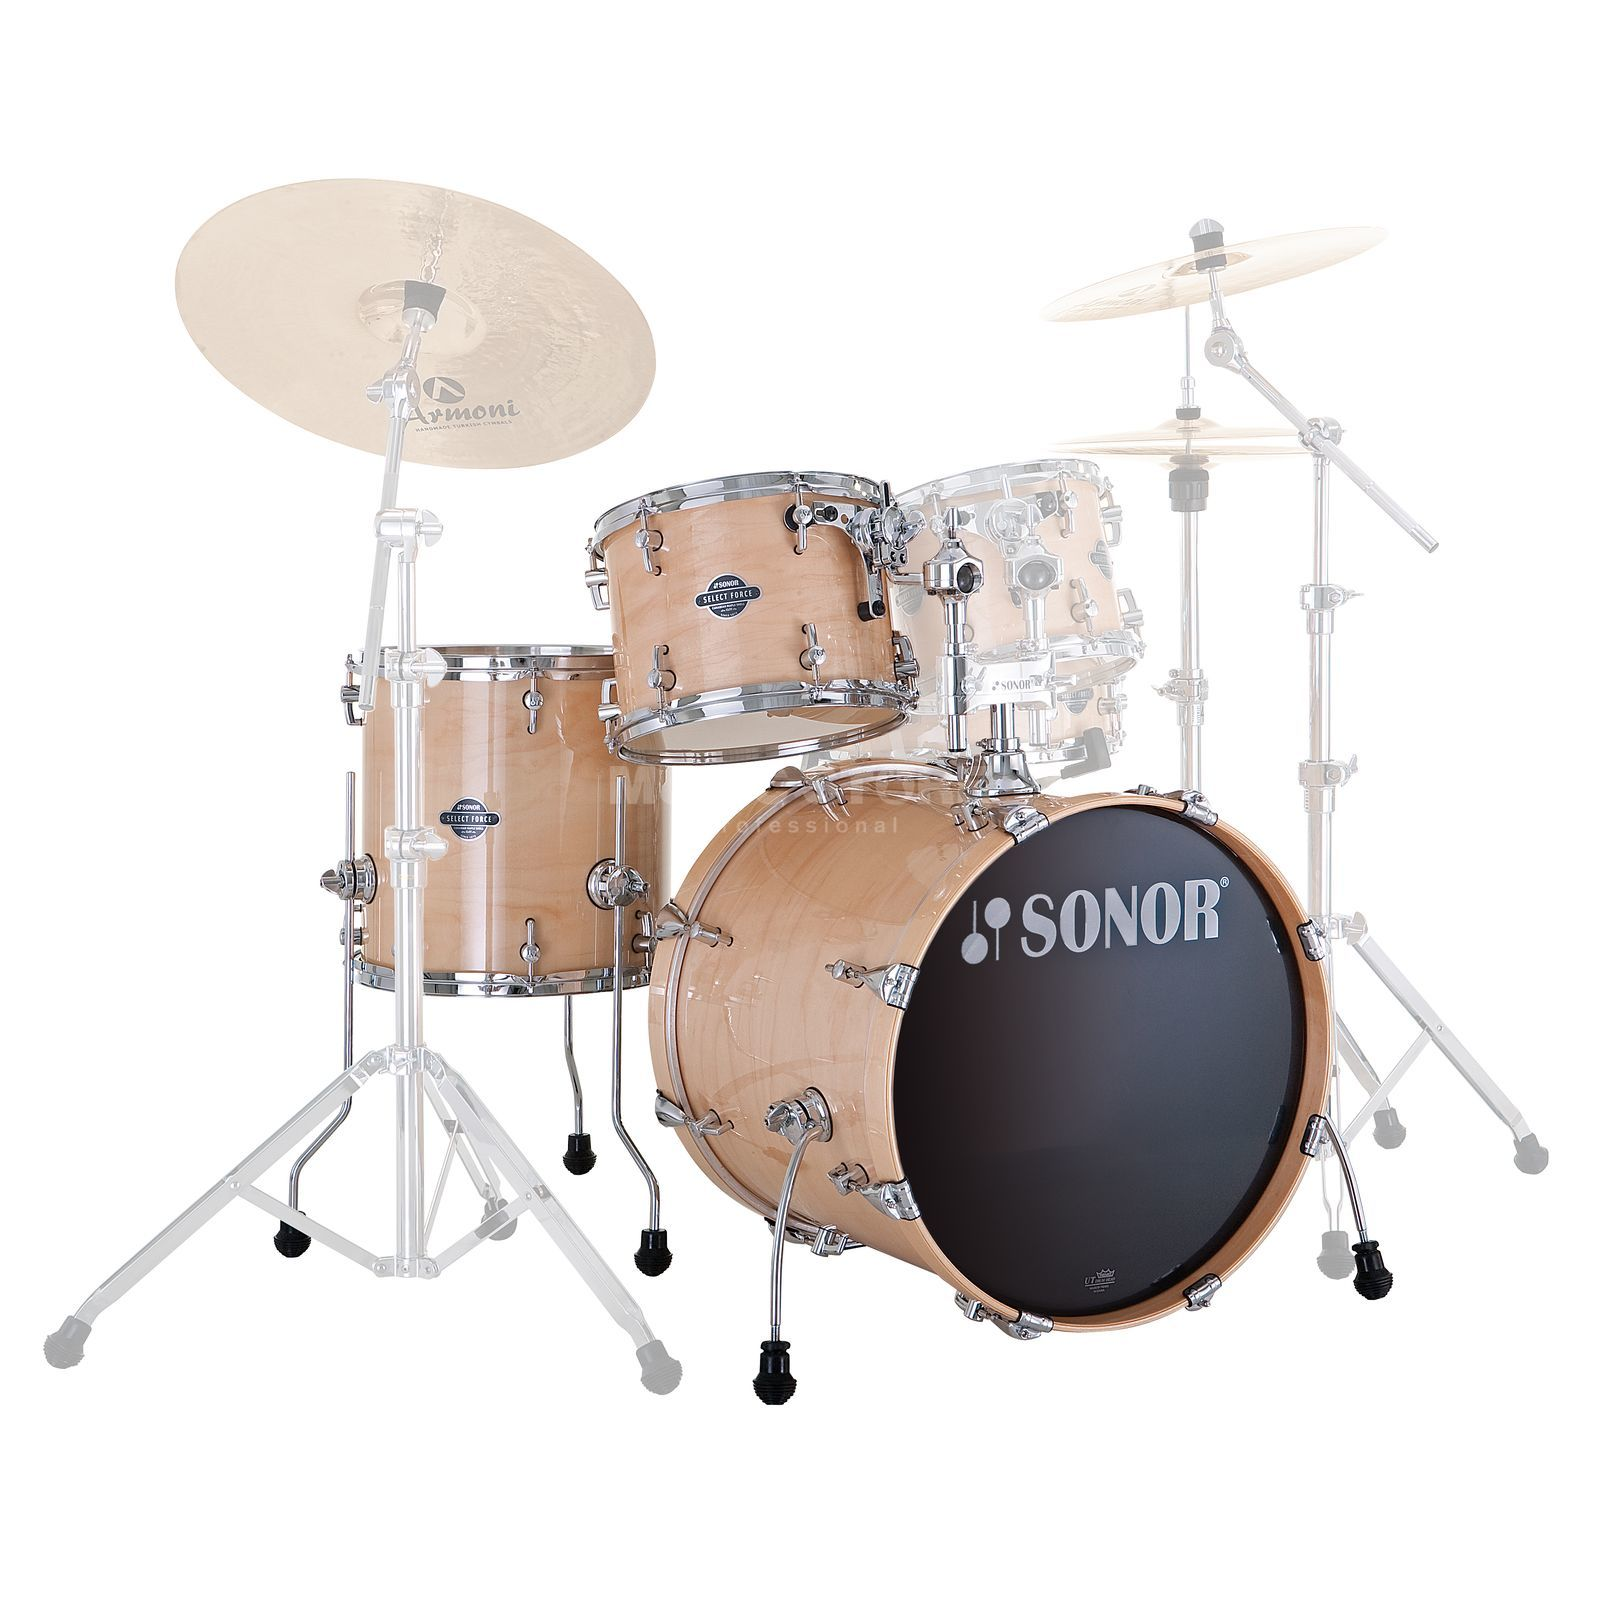 Sonor Select Force Jungle ShellSet, érable #44 Image du produit